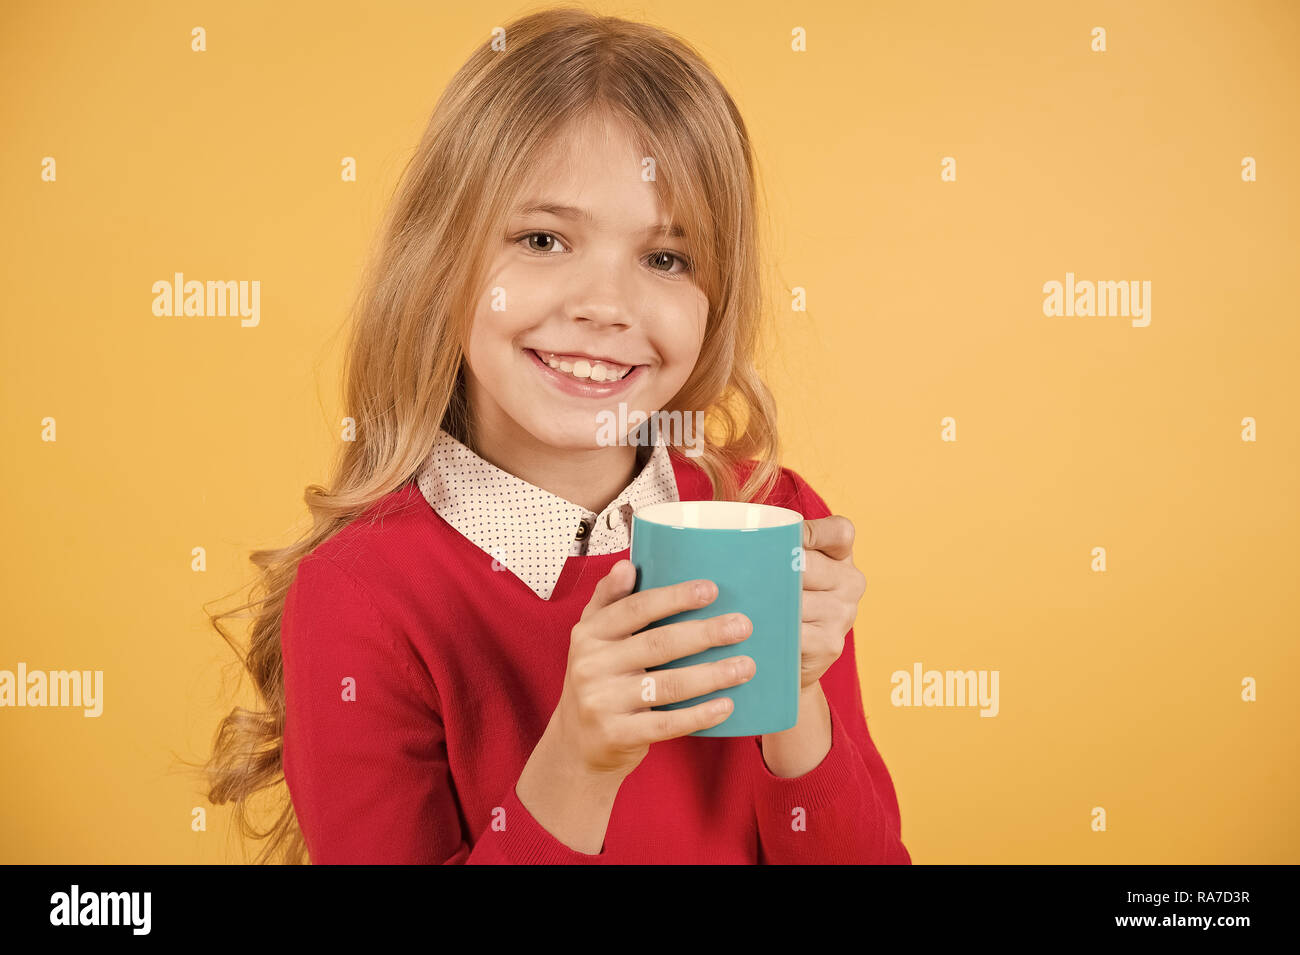 Child smile with blue cup on orange background. Girl with long blond hair in red sweater hold mug. Thirst, dehydration concept. Health and healthy drink. Tea or coffee break. - Stock Image